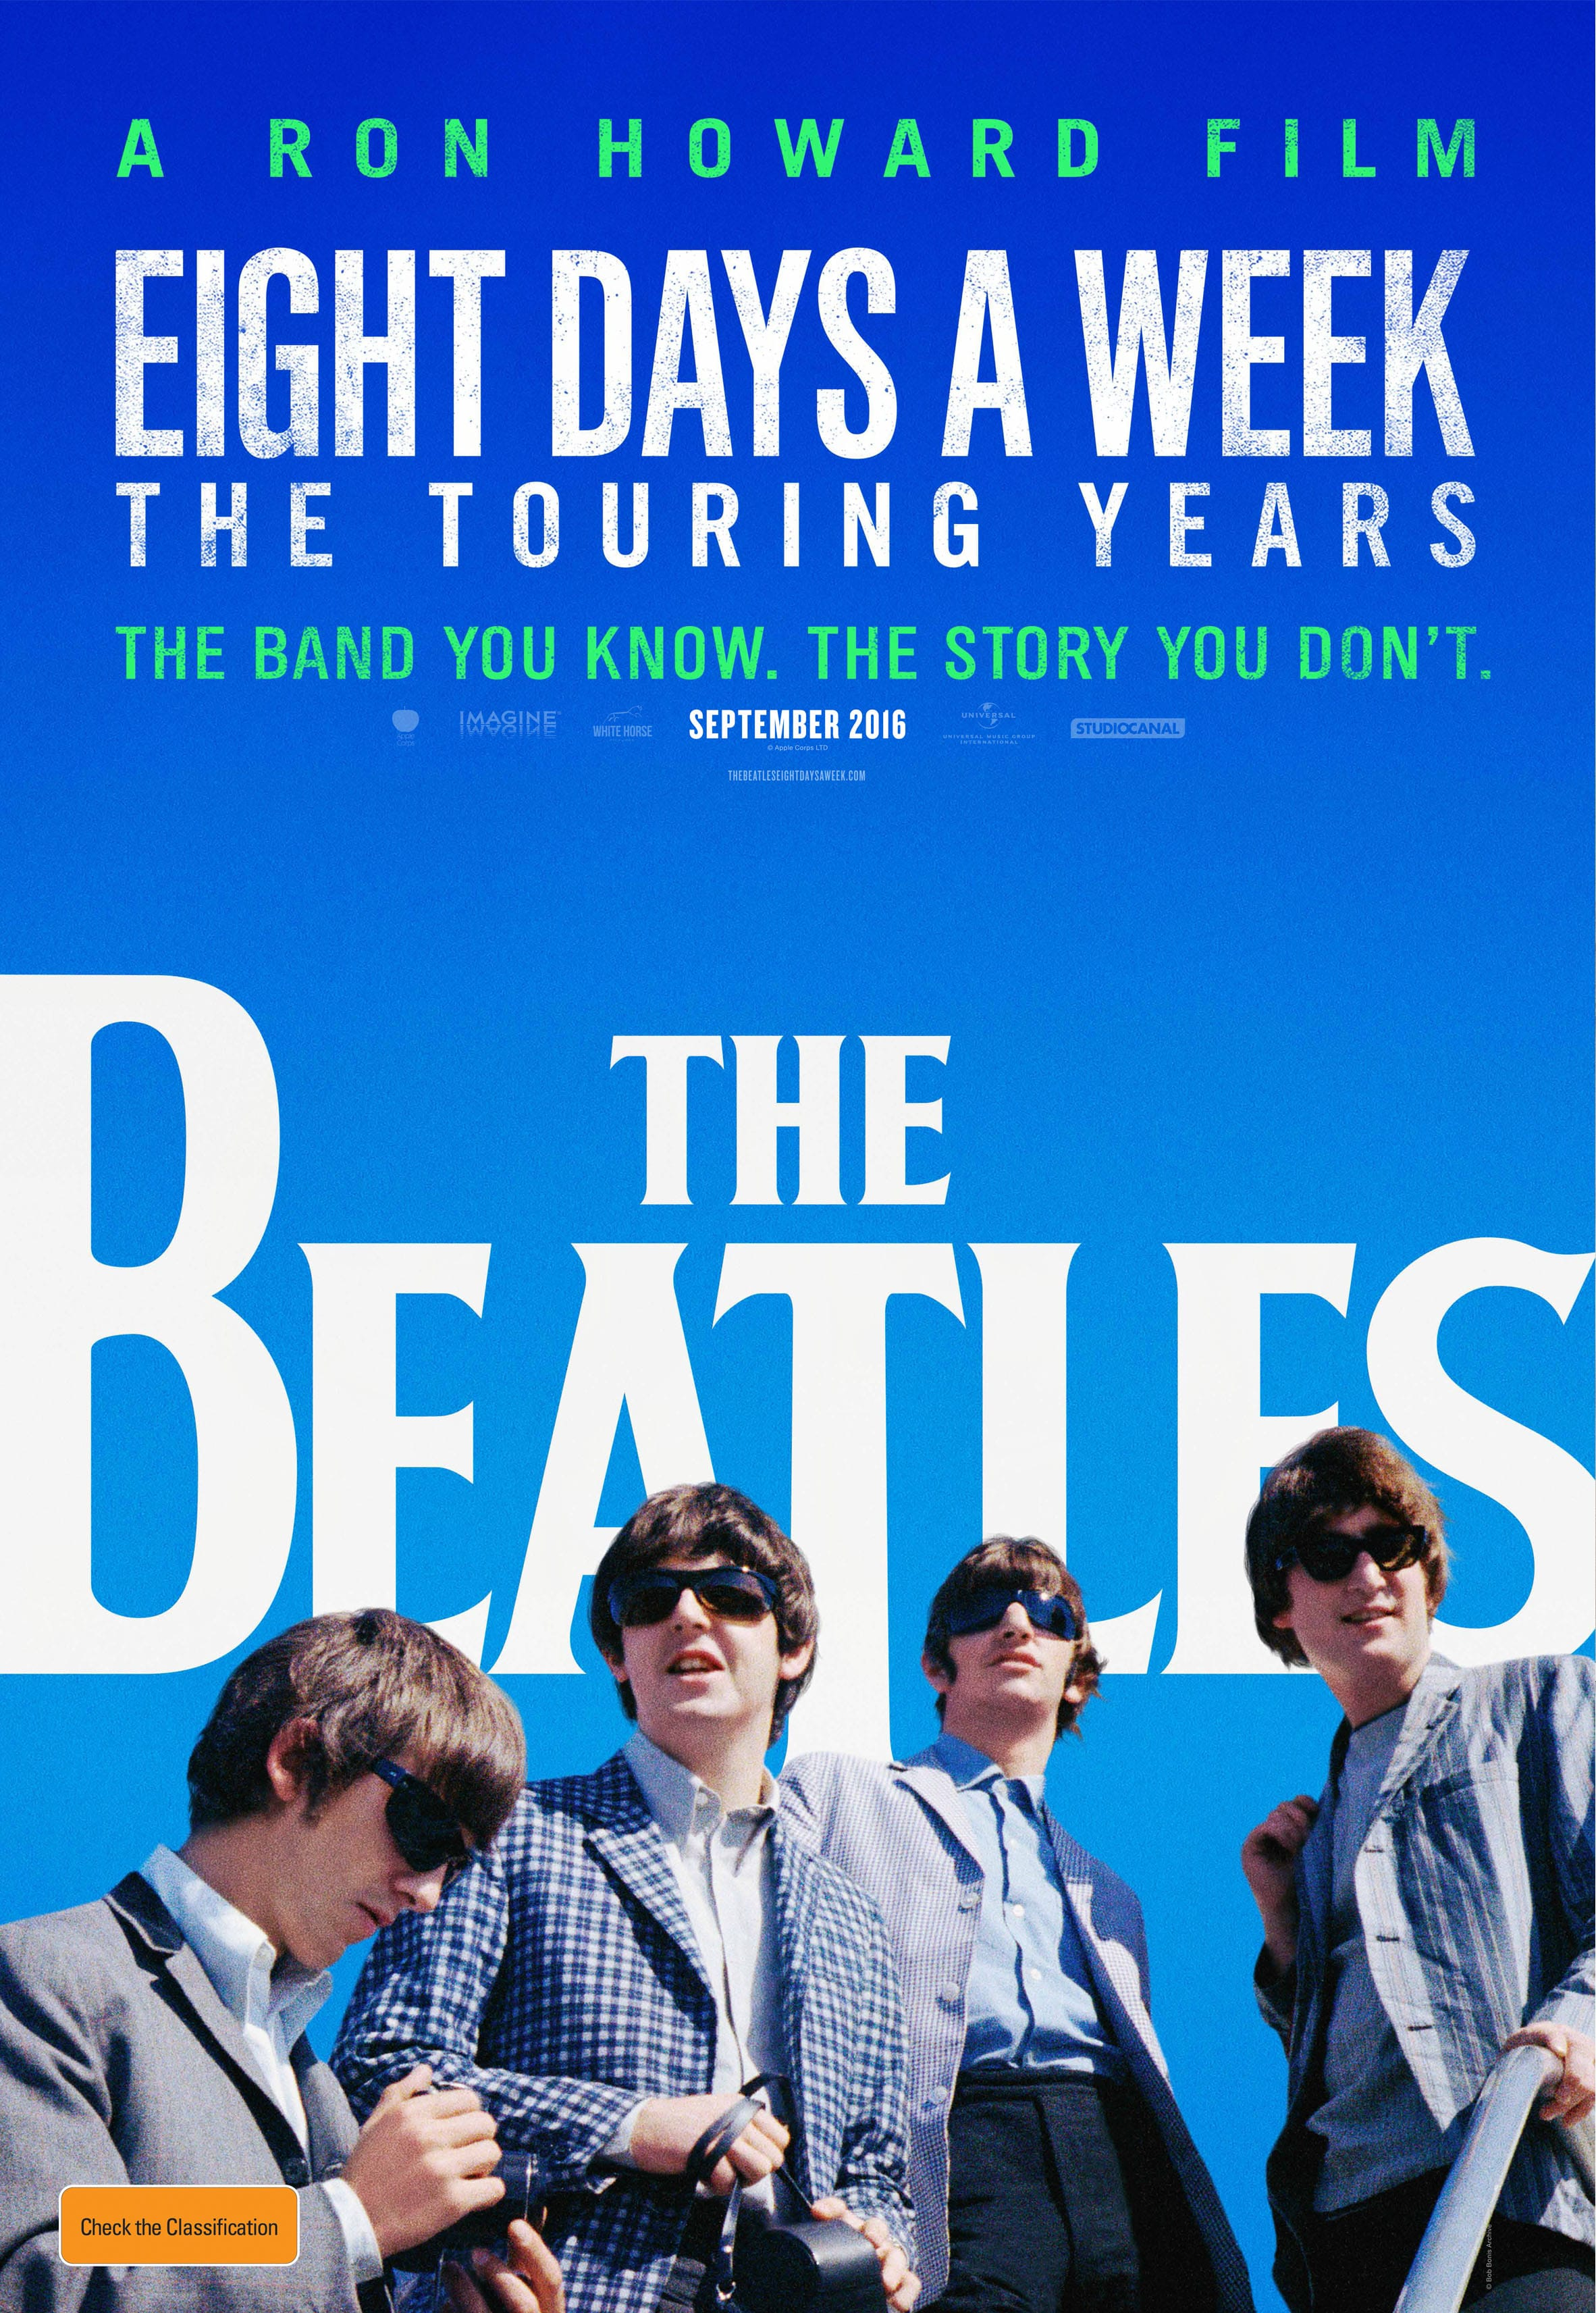 acf3b5117d93 Beatles Documentary, Album Shed Light On Our Continued Fascination ...